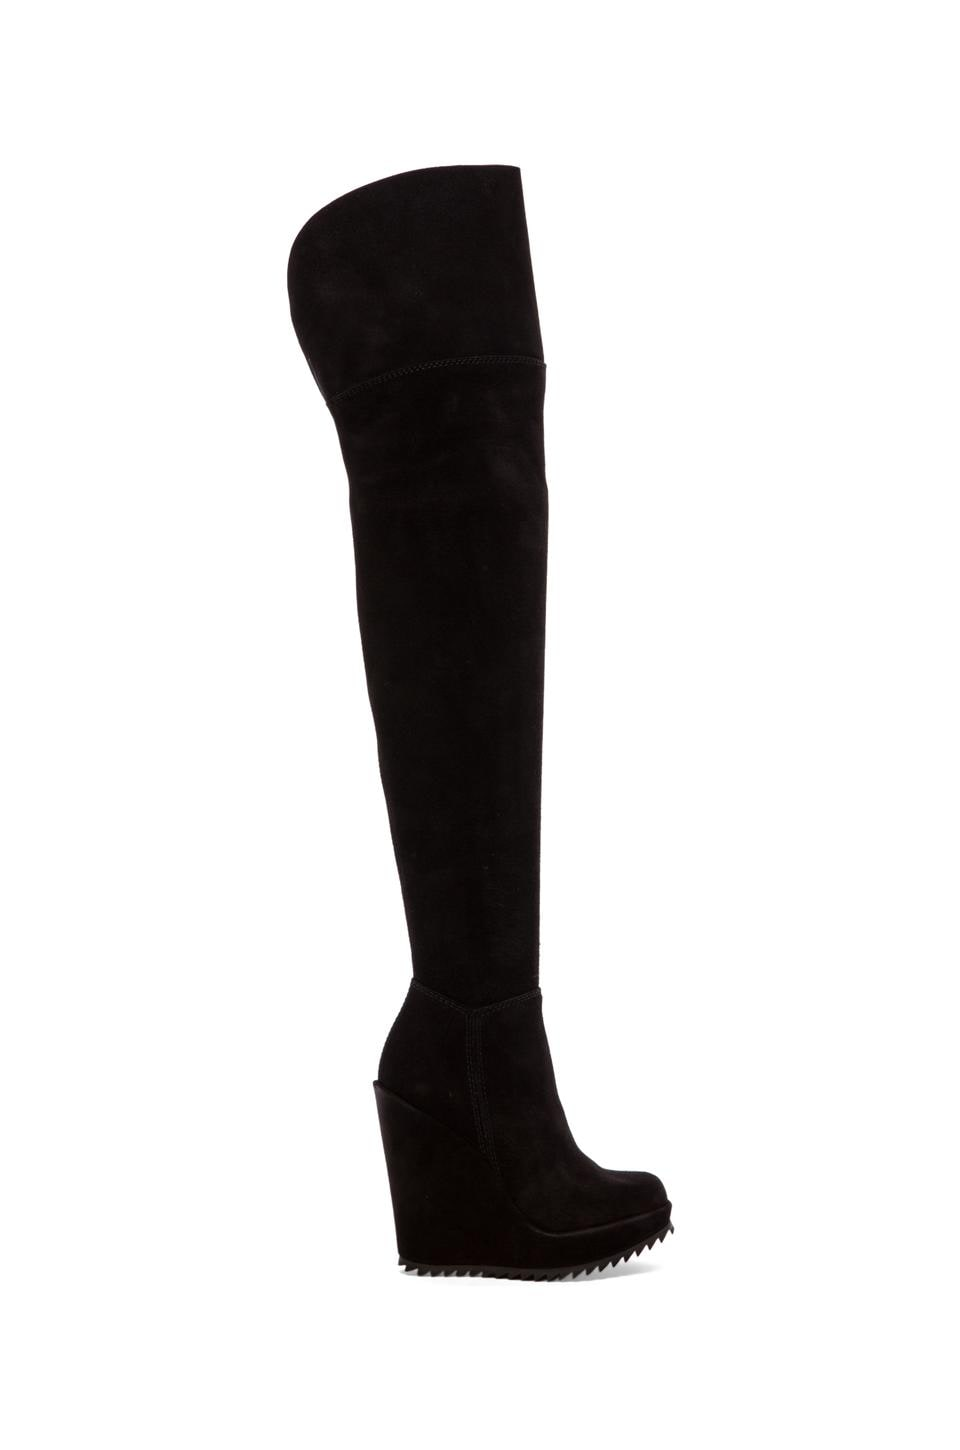 Pedro Garcia Vanne Castra Wedge Boot in Black